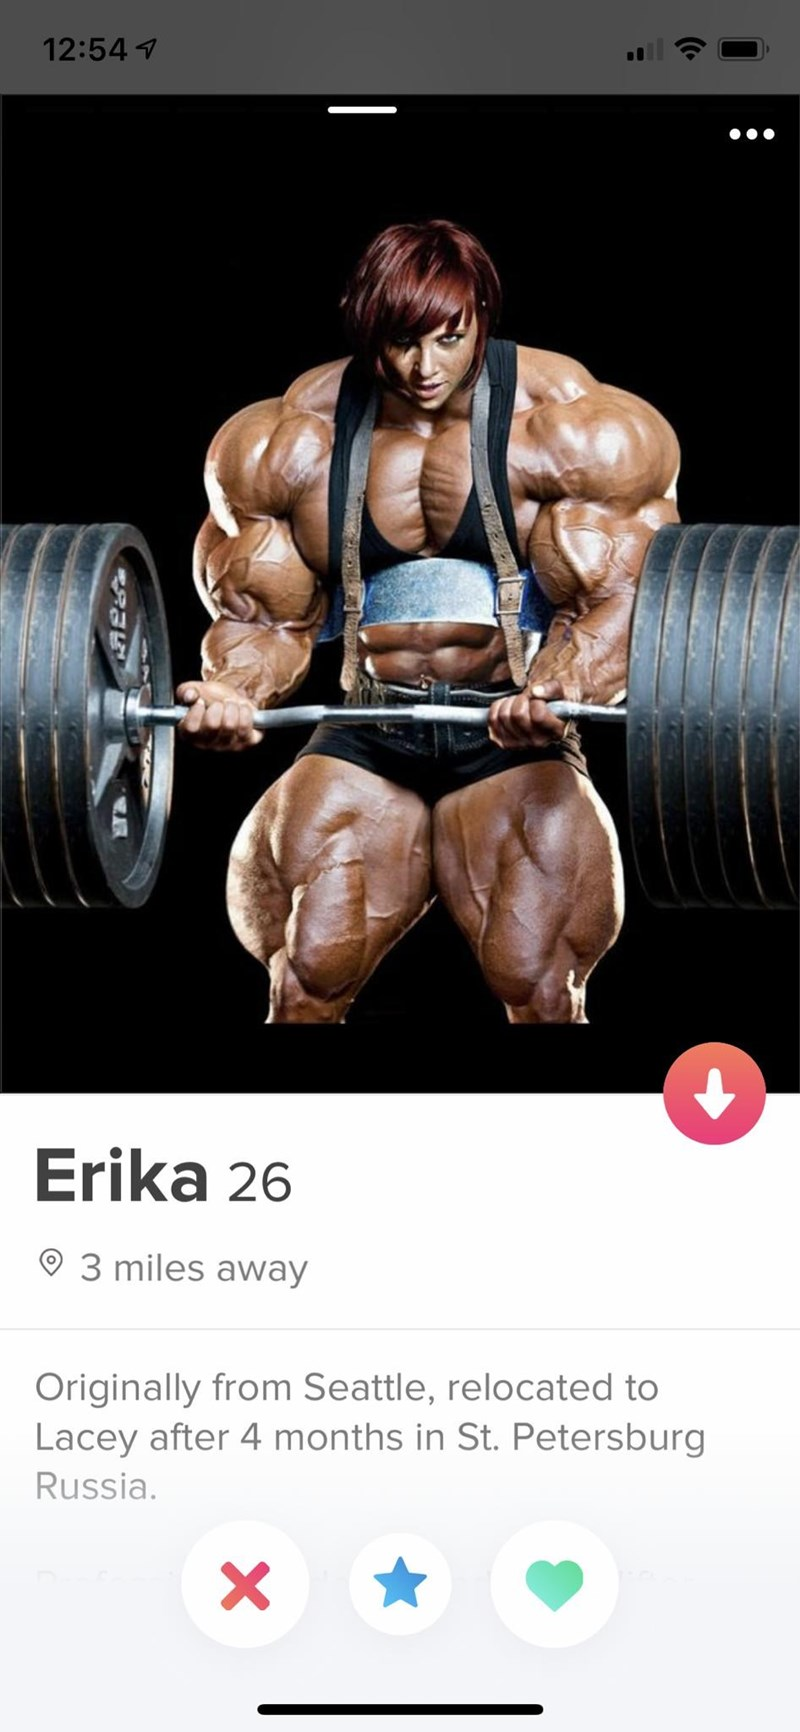 Bodybuilder - 12:54 Erika 26 93 miles away Originally from Seattle, relocated to Lacey after 4 months in St. Petersburg Russia